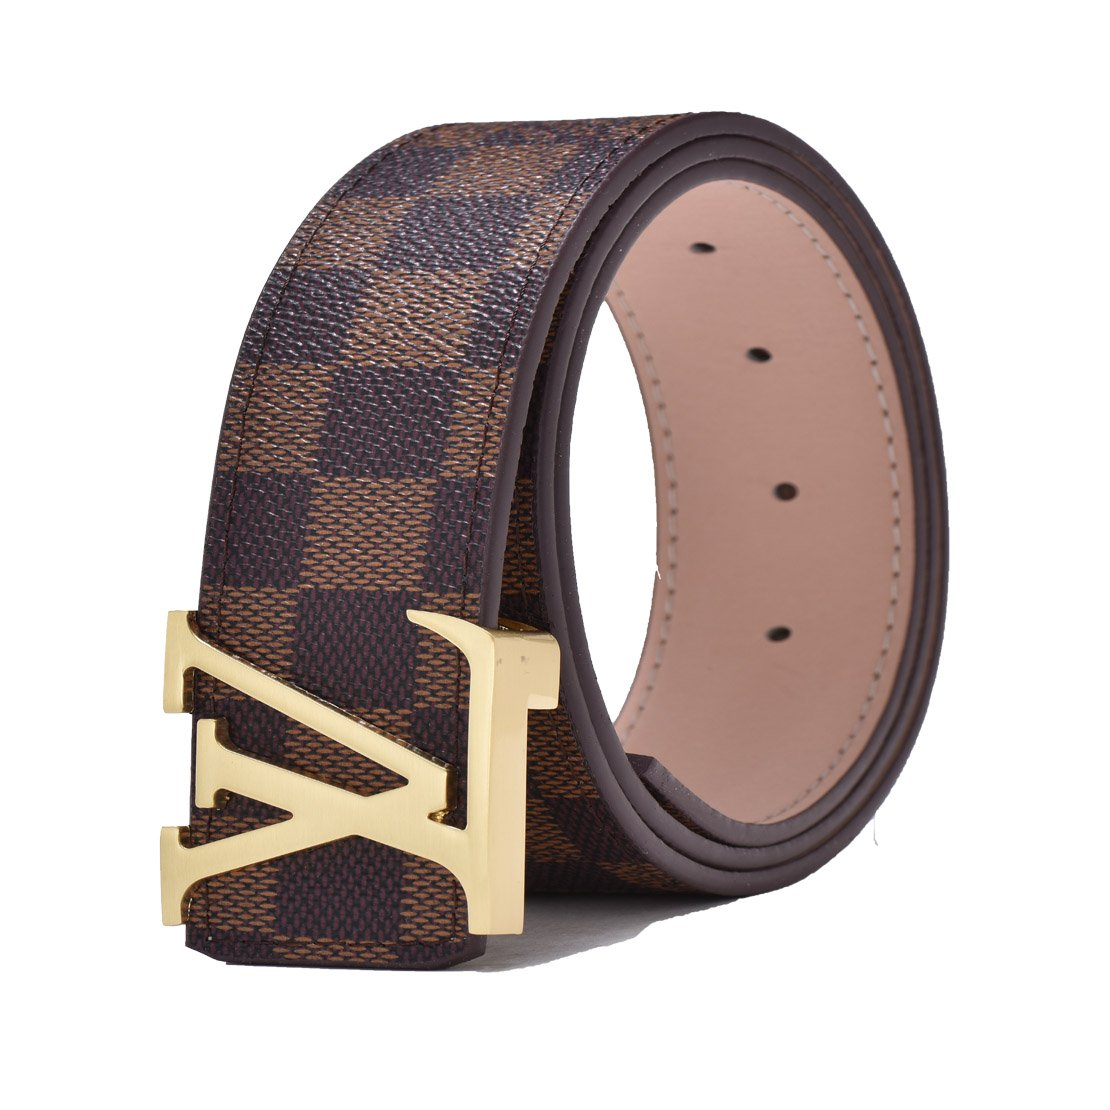 Fashion Leather Metal Buckle Unisex Belt Casual Business Beltteen